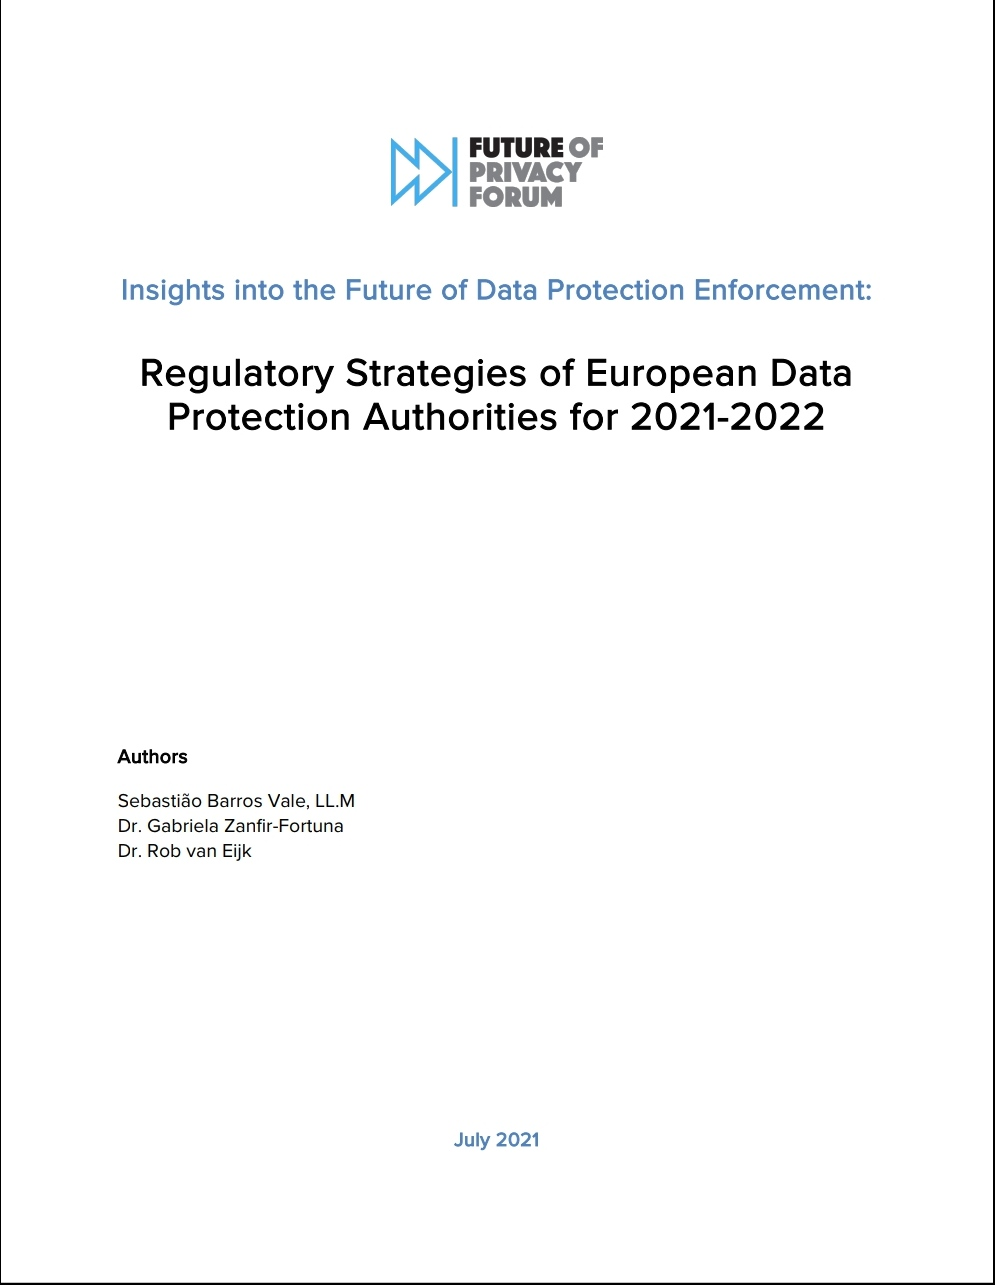 INSIGHTS INTO THE FUTURE OF DATA PROTECTION ENFORCEMENT: REGULATORY STRATEGIES OF EUROPEAN DATA PROTECTION AUTHORITIES FOR 2021-2022